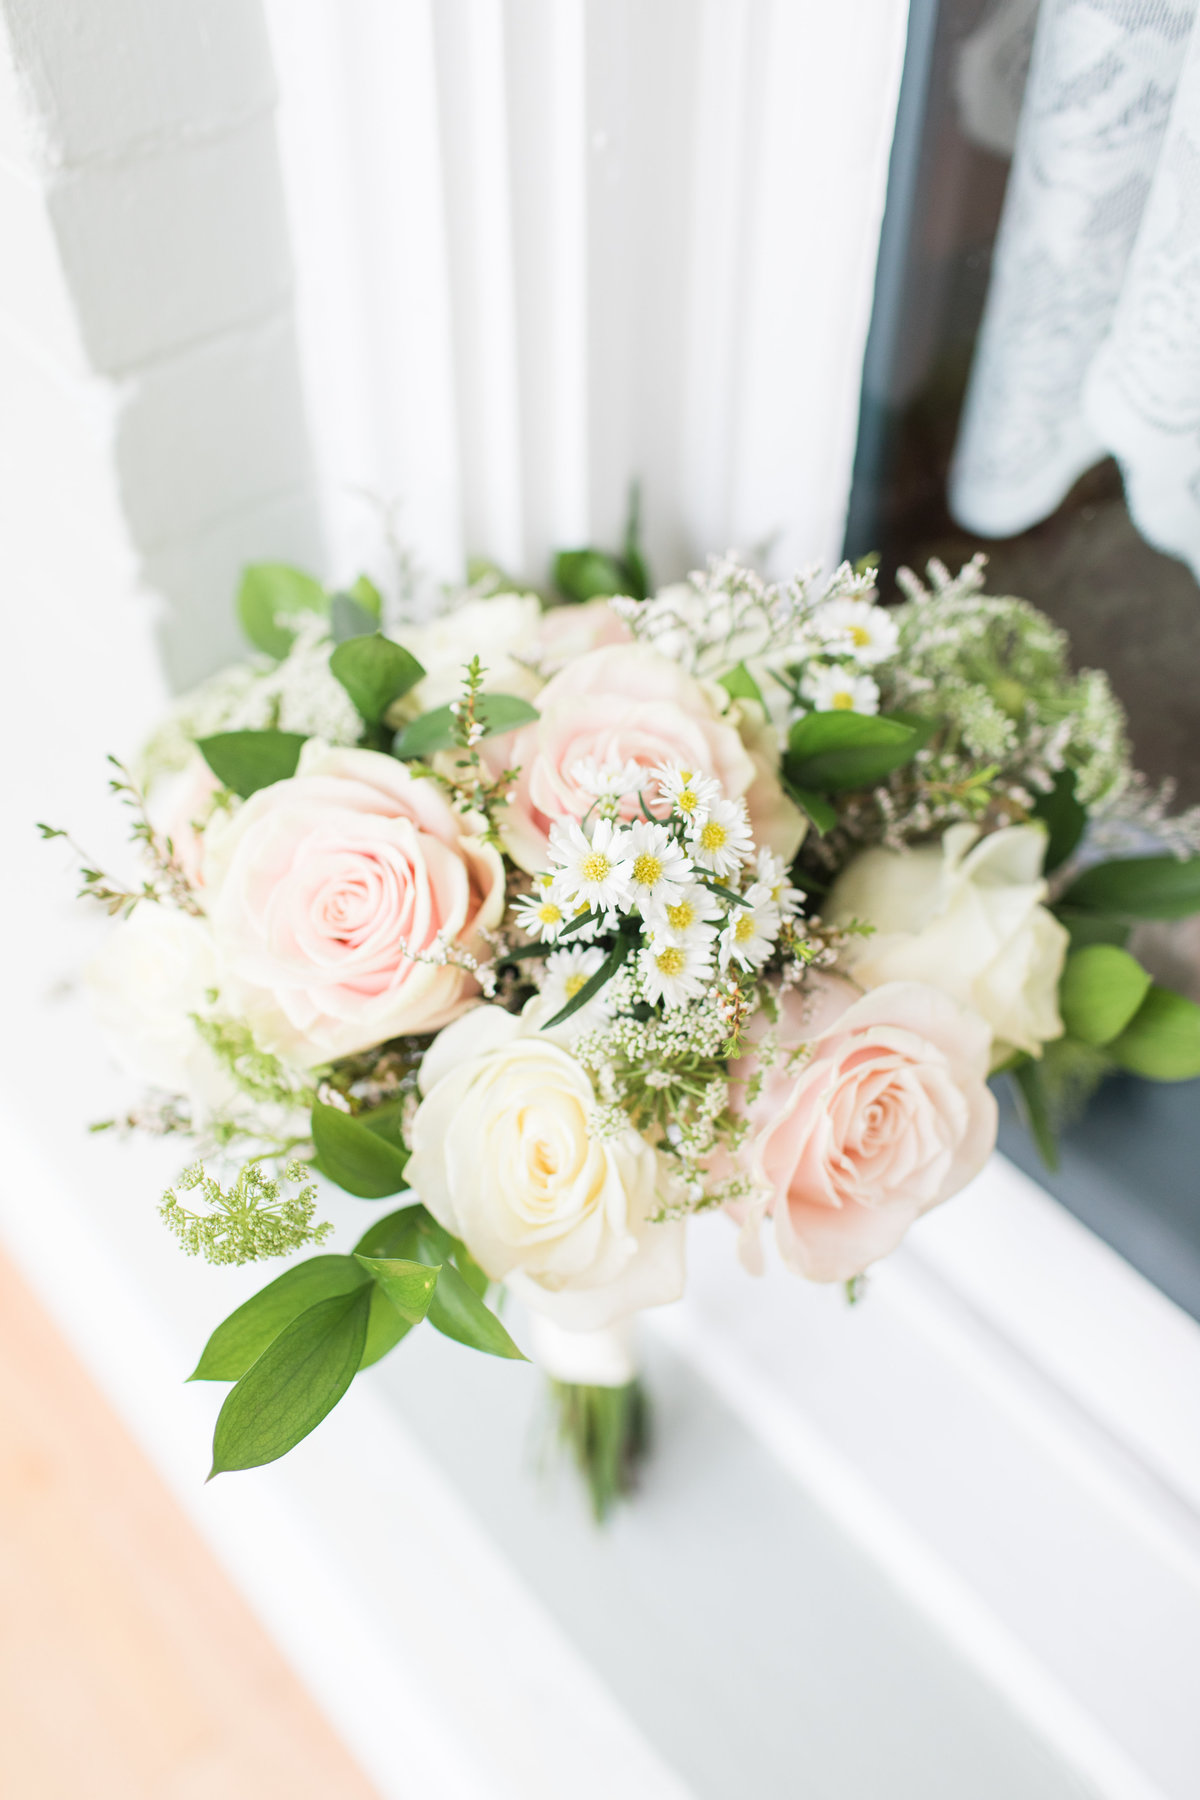 Bridal Bouquet with Blush and White Roses